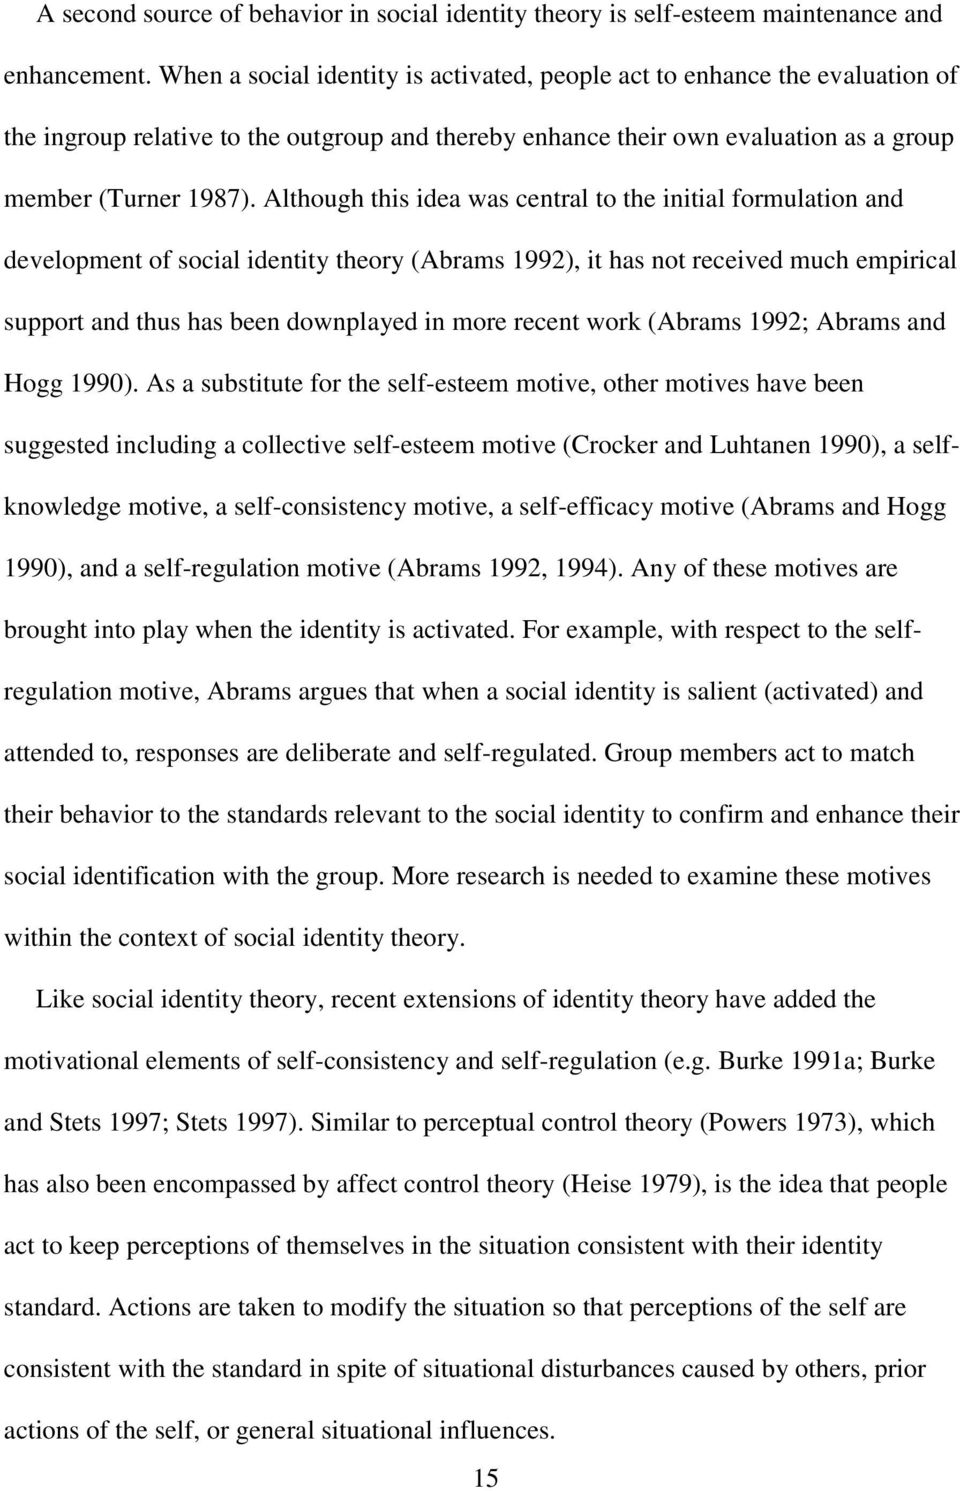 Although this idea was central to the initial formulation and development of social identity theory (Abrams 1992), it has not received much empirical support and thus has been downplayed in more